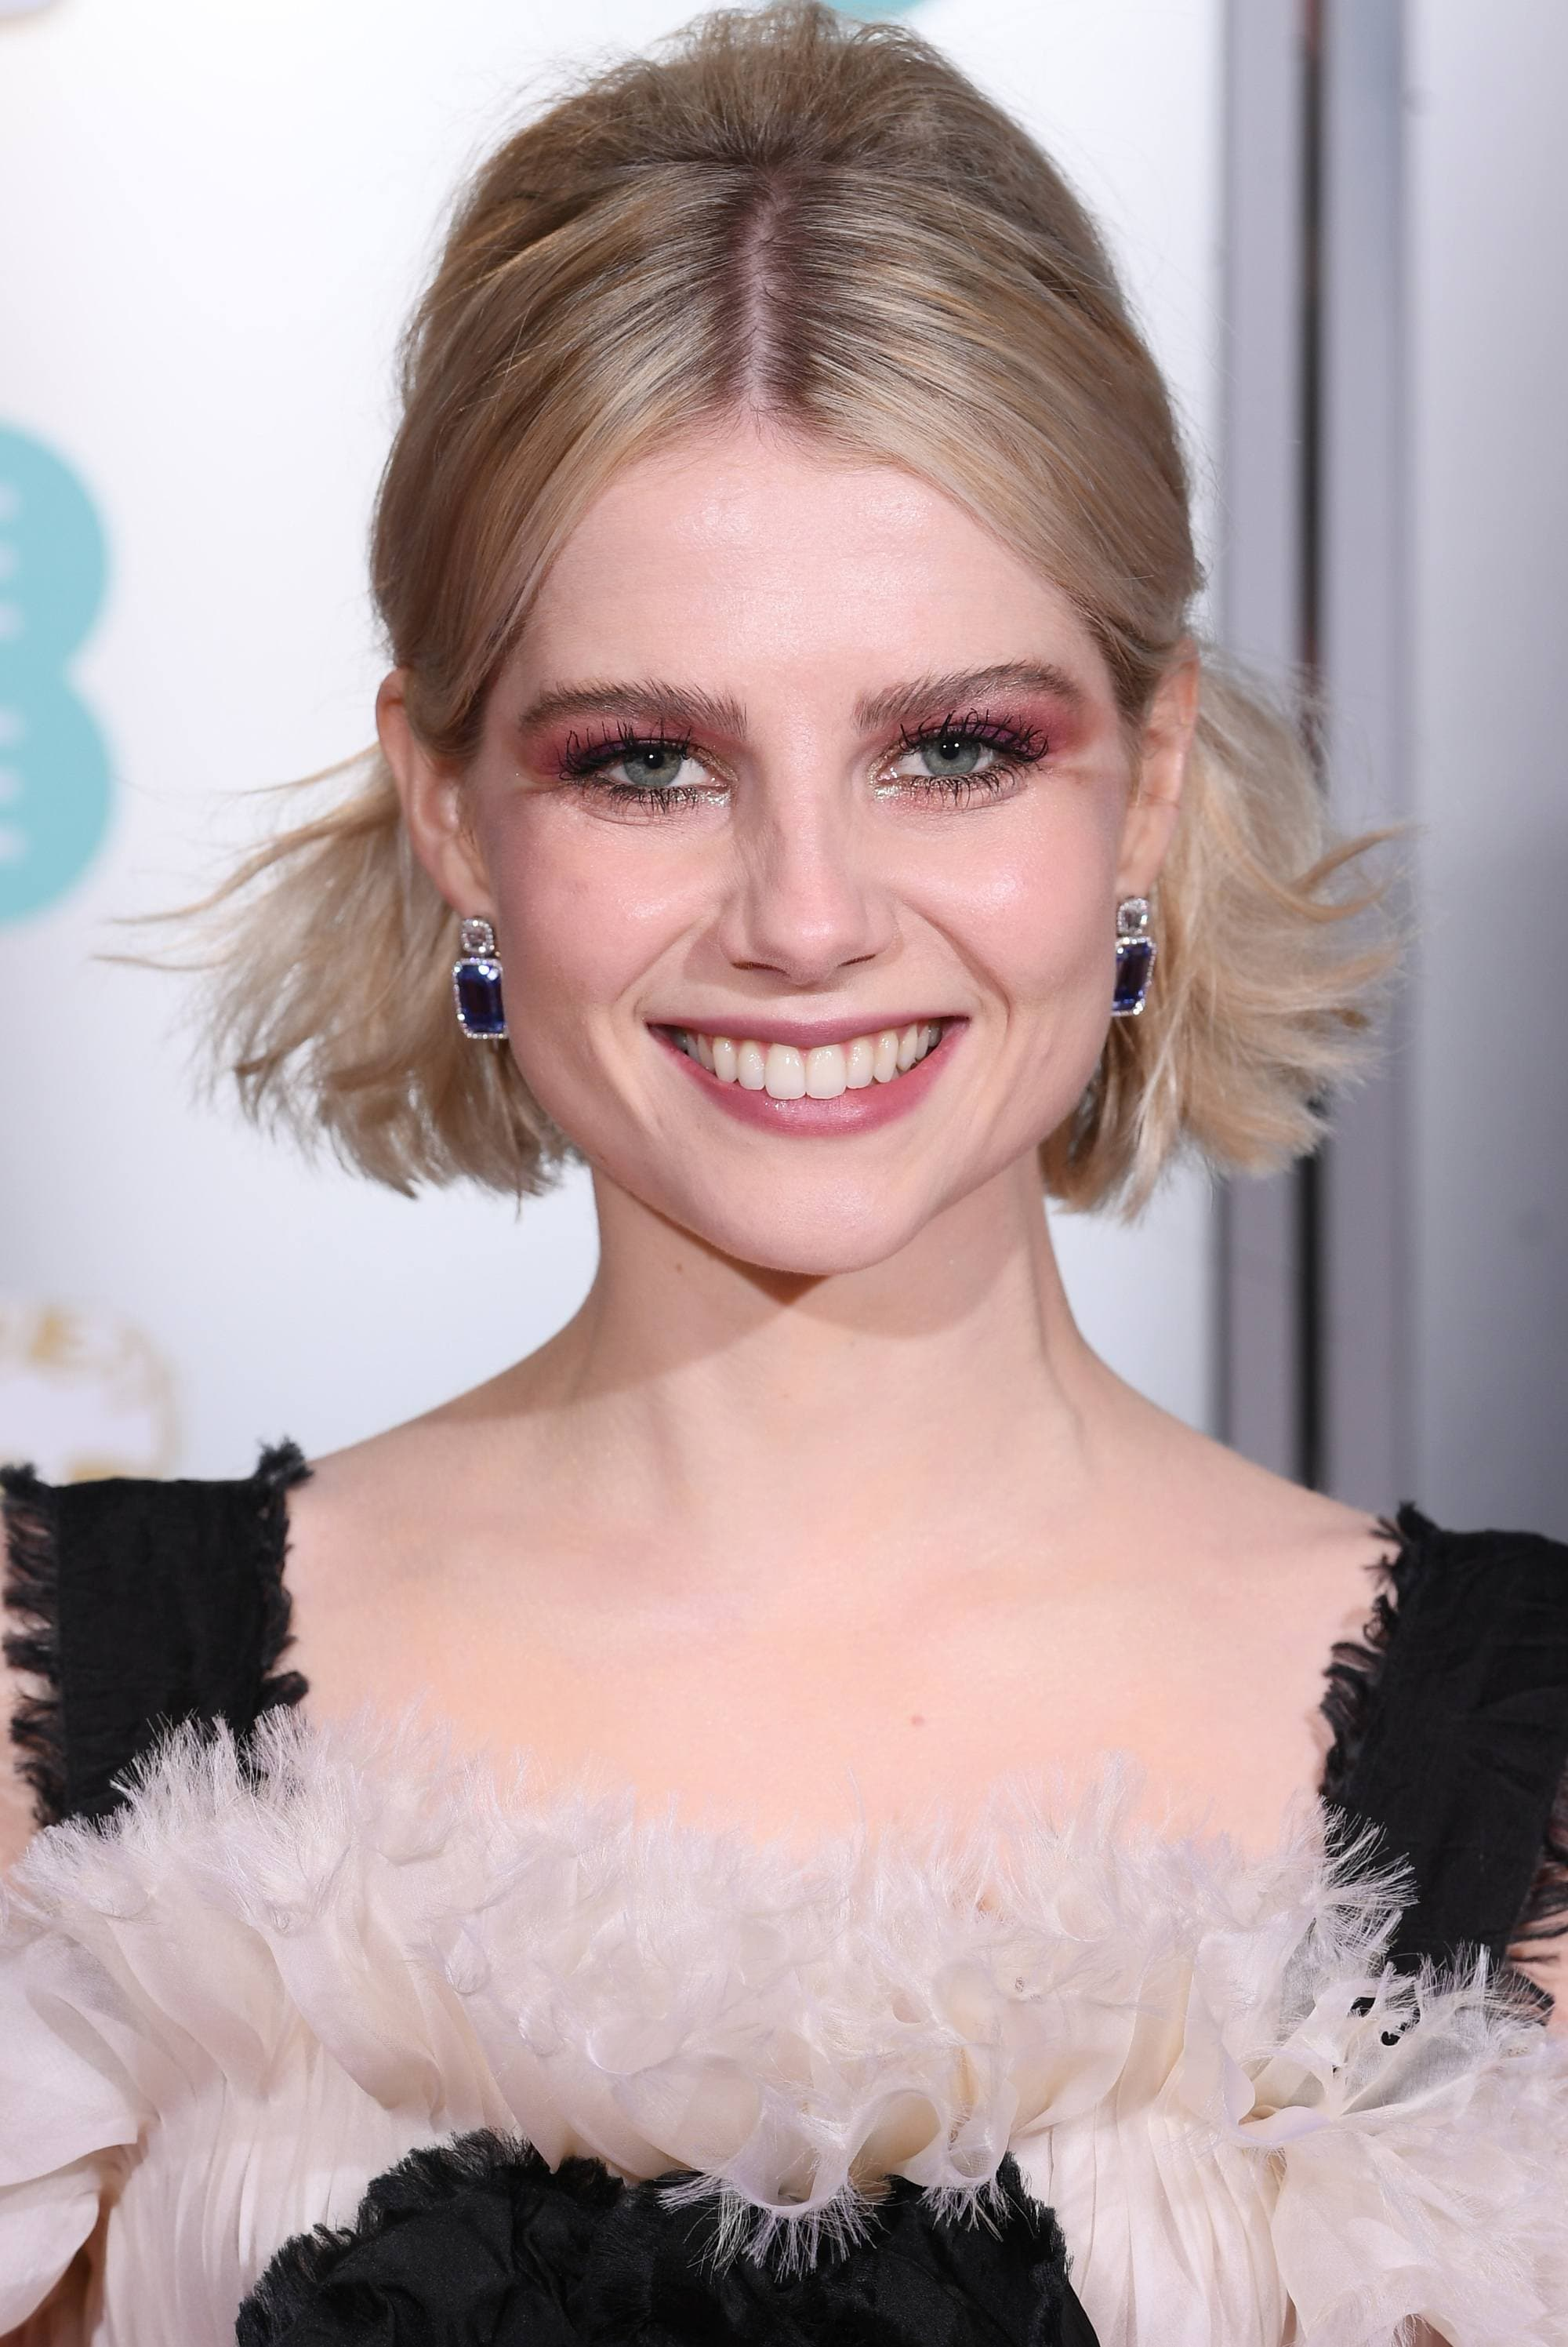 BAFTAs hairstyles: Lucy Boynton with blonde bob styled in a half-up, half-down pinned back hairstyle with volume at the crown on the red carpet.